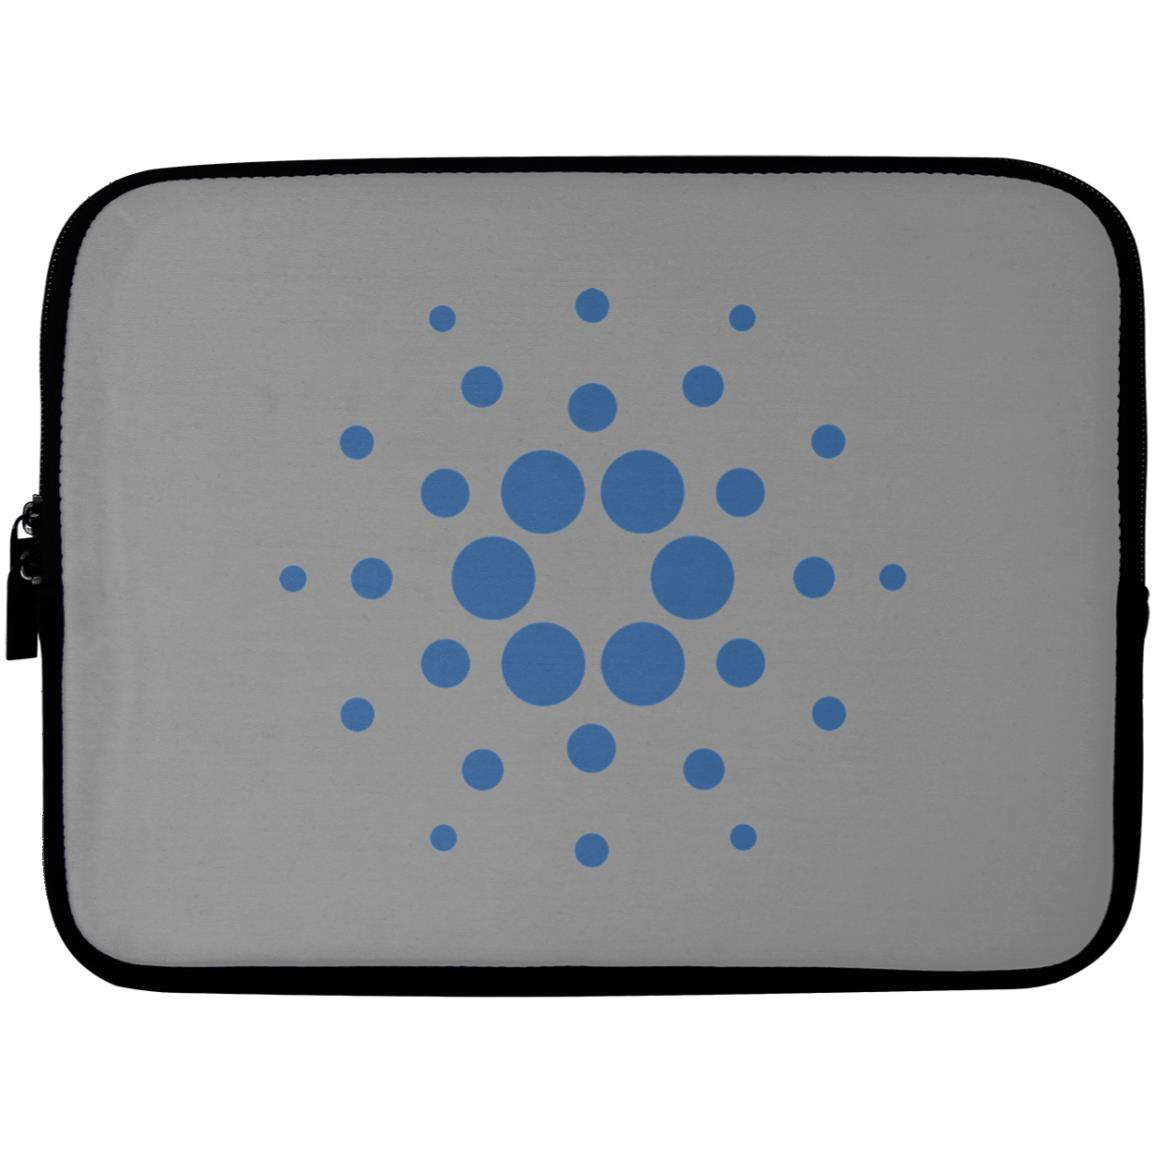 Cardano Laptop Sleeve - 10 inch